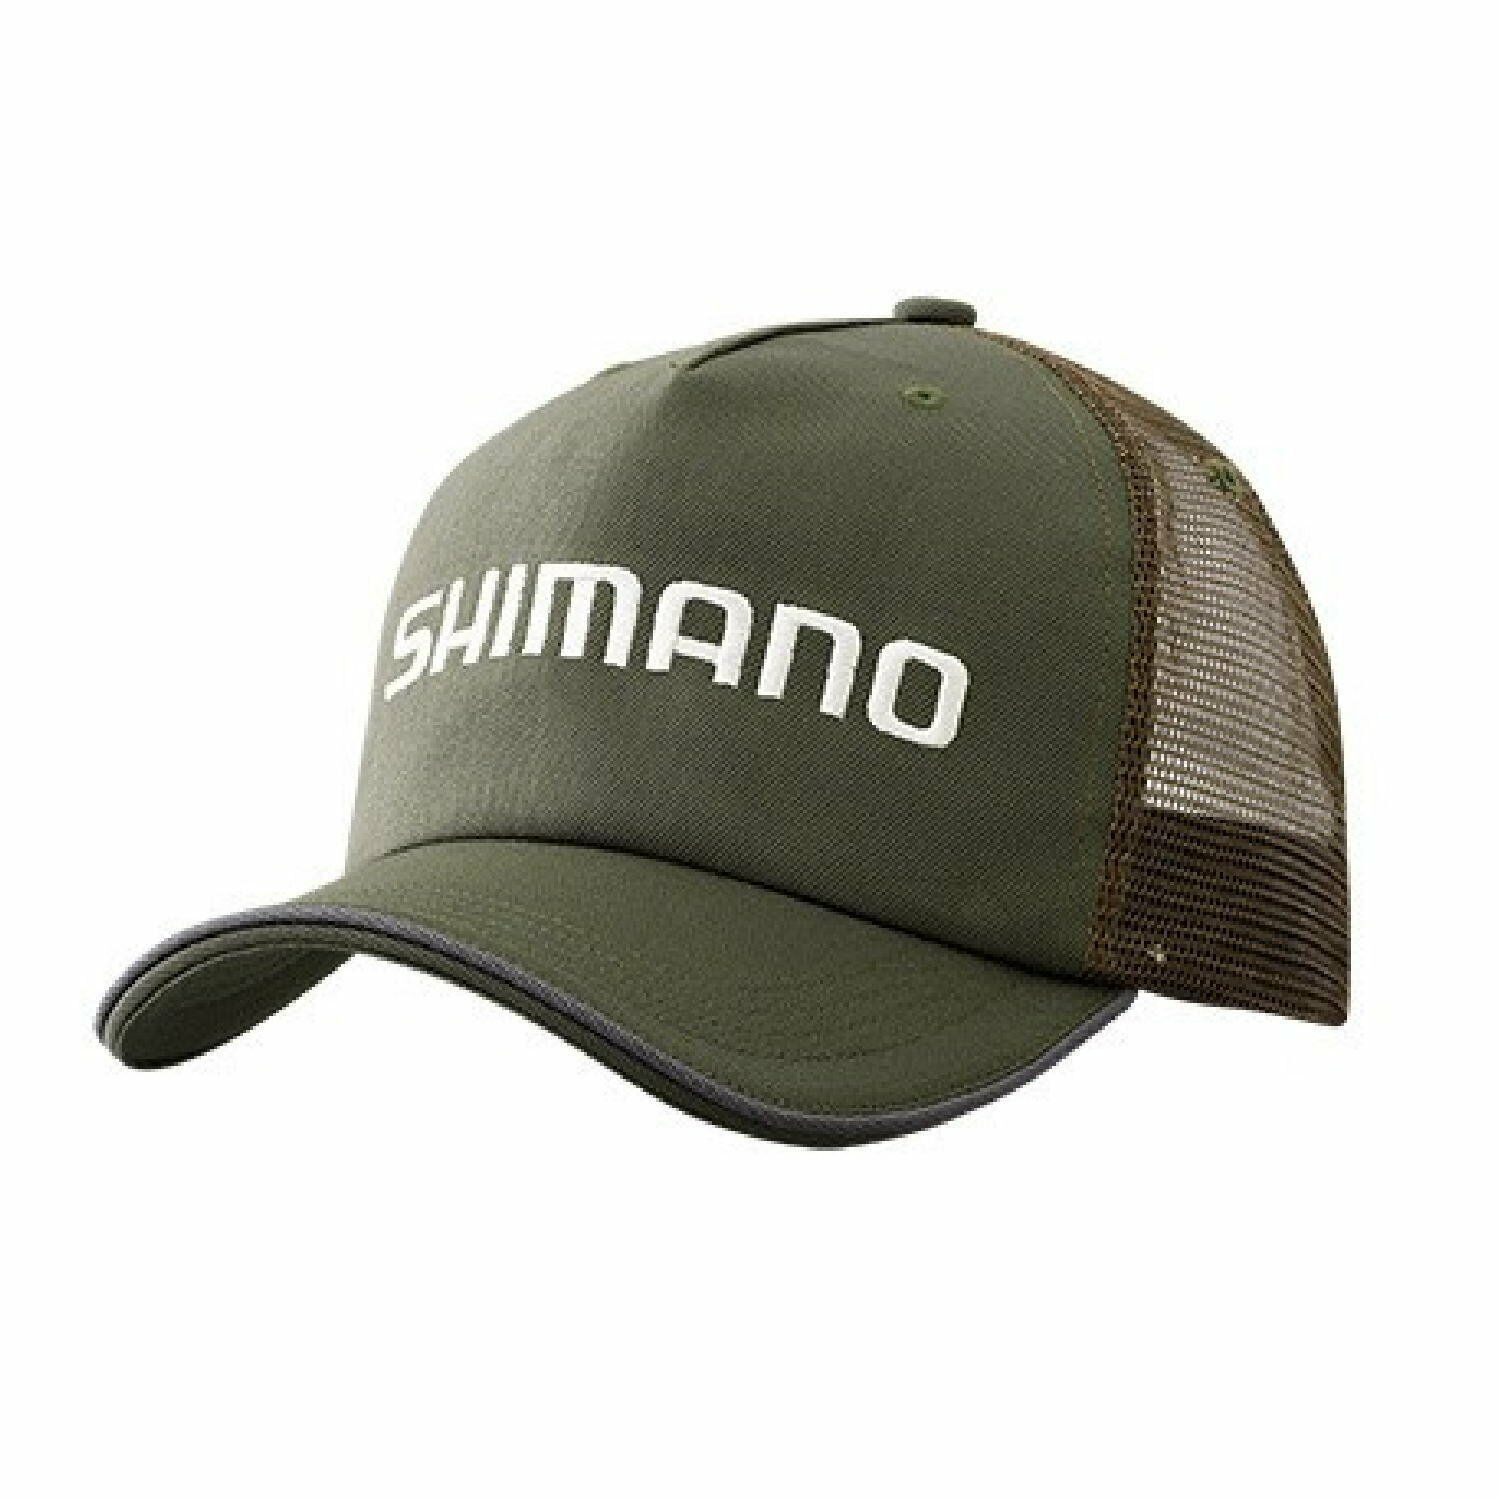 SHIuomoO Steard Mesh Fishing Cap CA042R KHAKI gratuito Dimensione Adjustable Japan nuovo